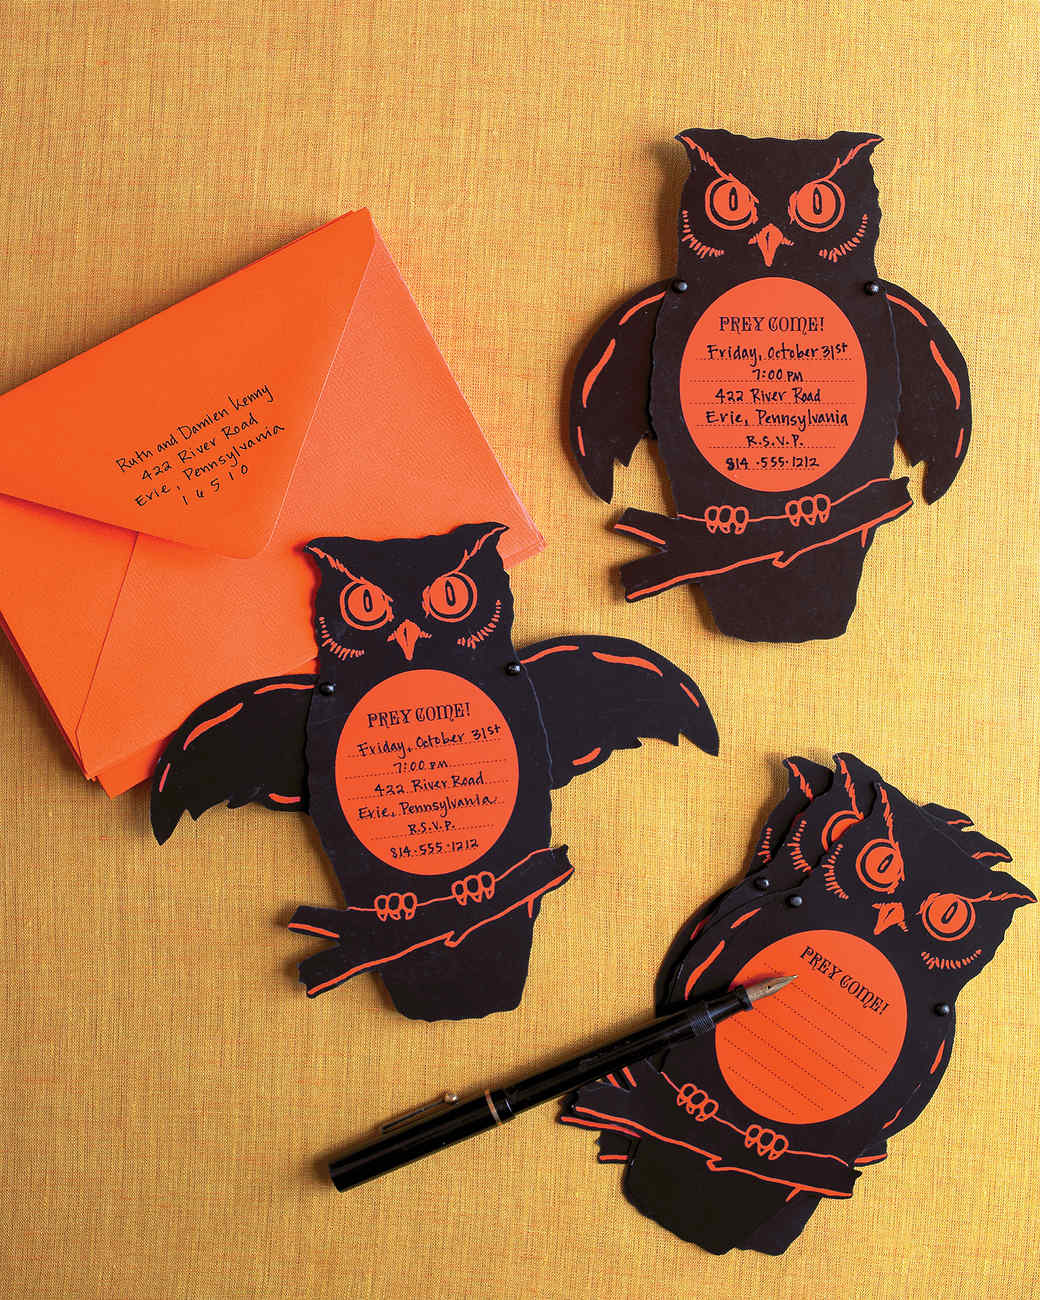 Handmade Halloween Invitations and Cards | Martha Stewart